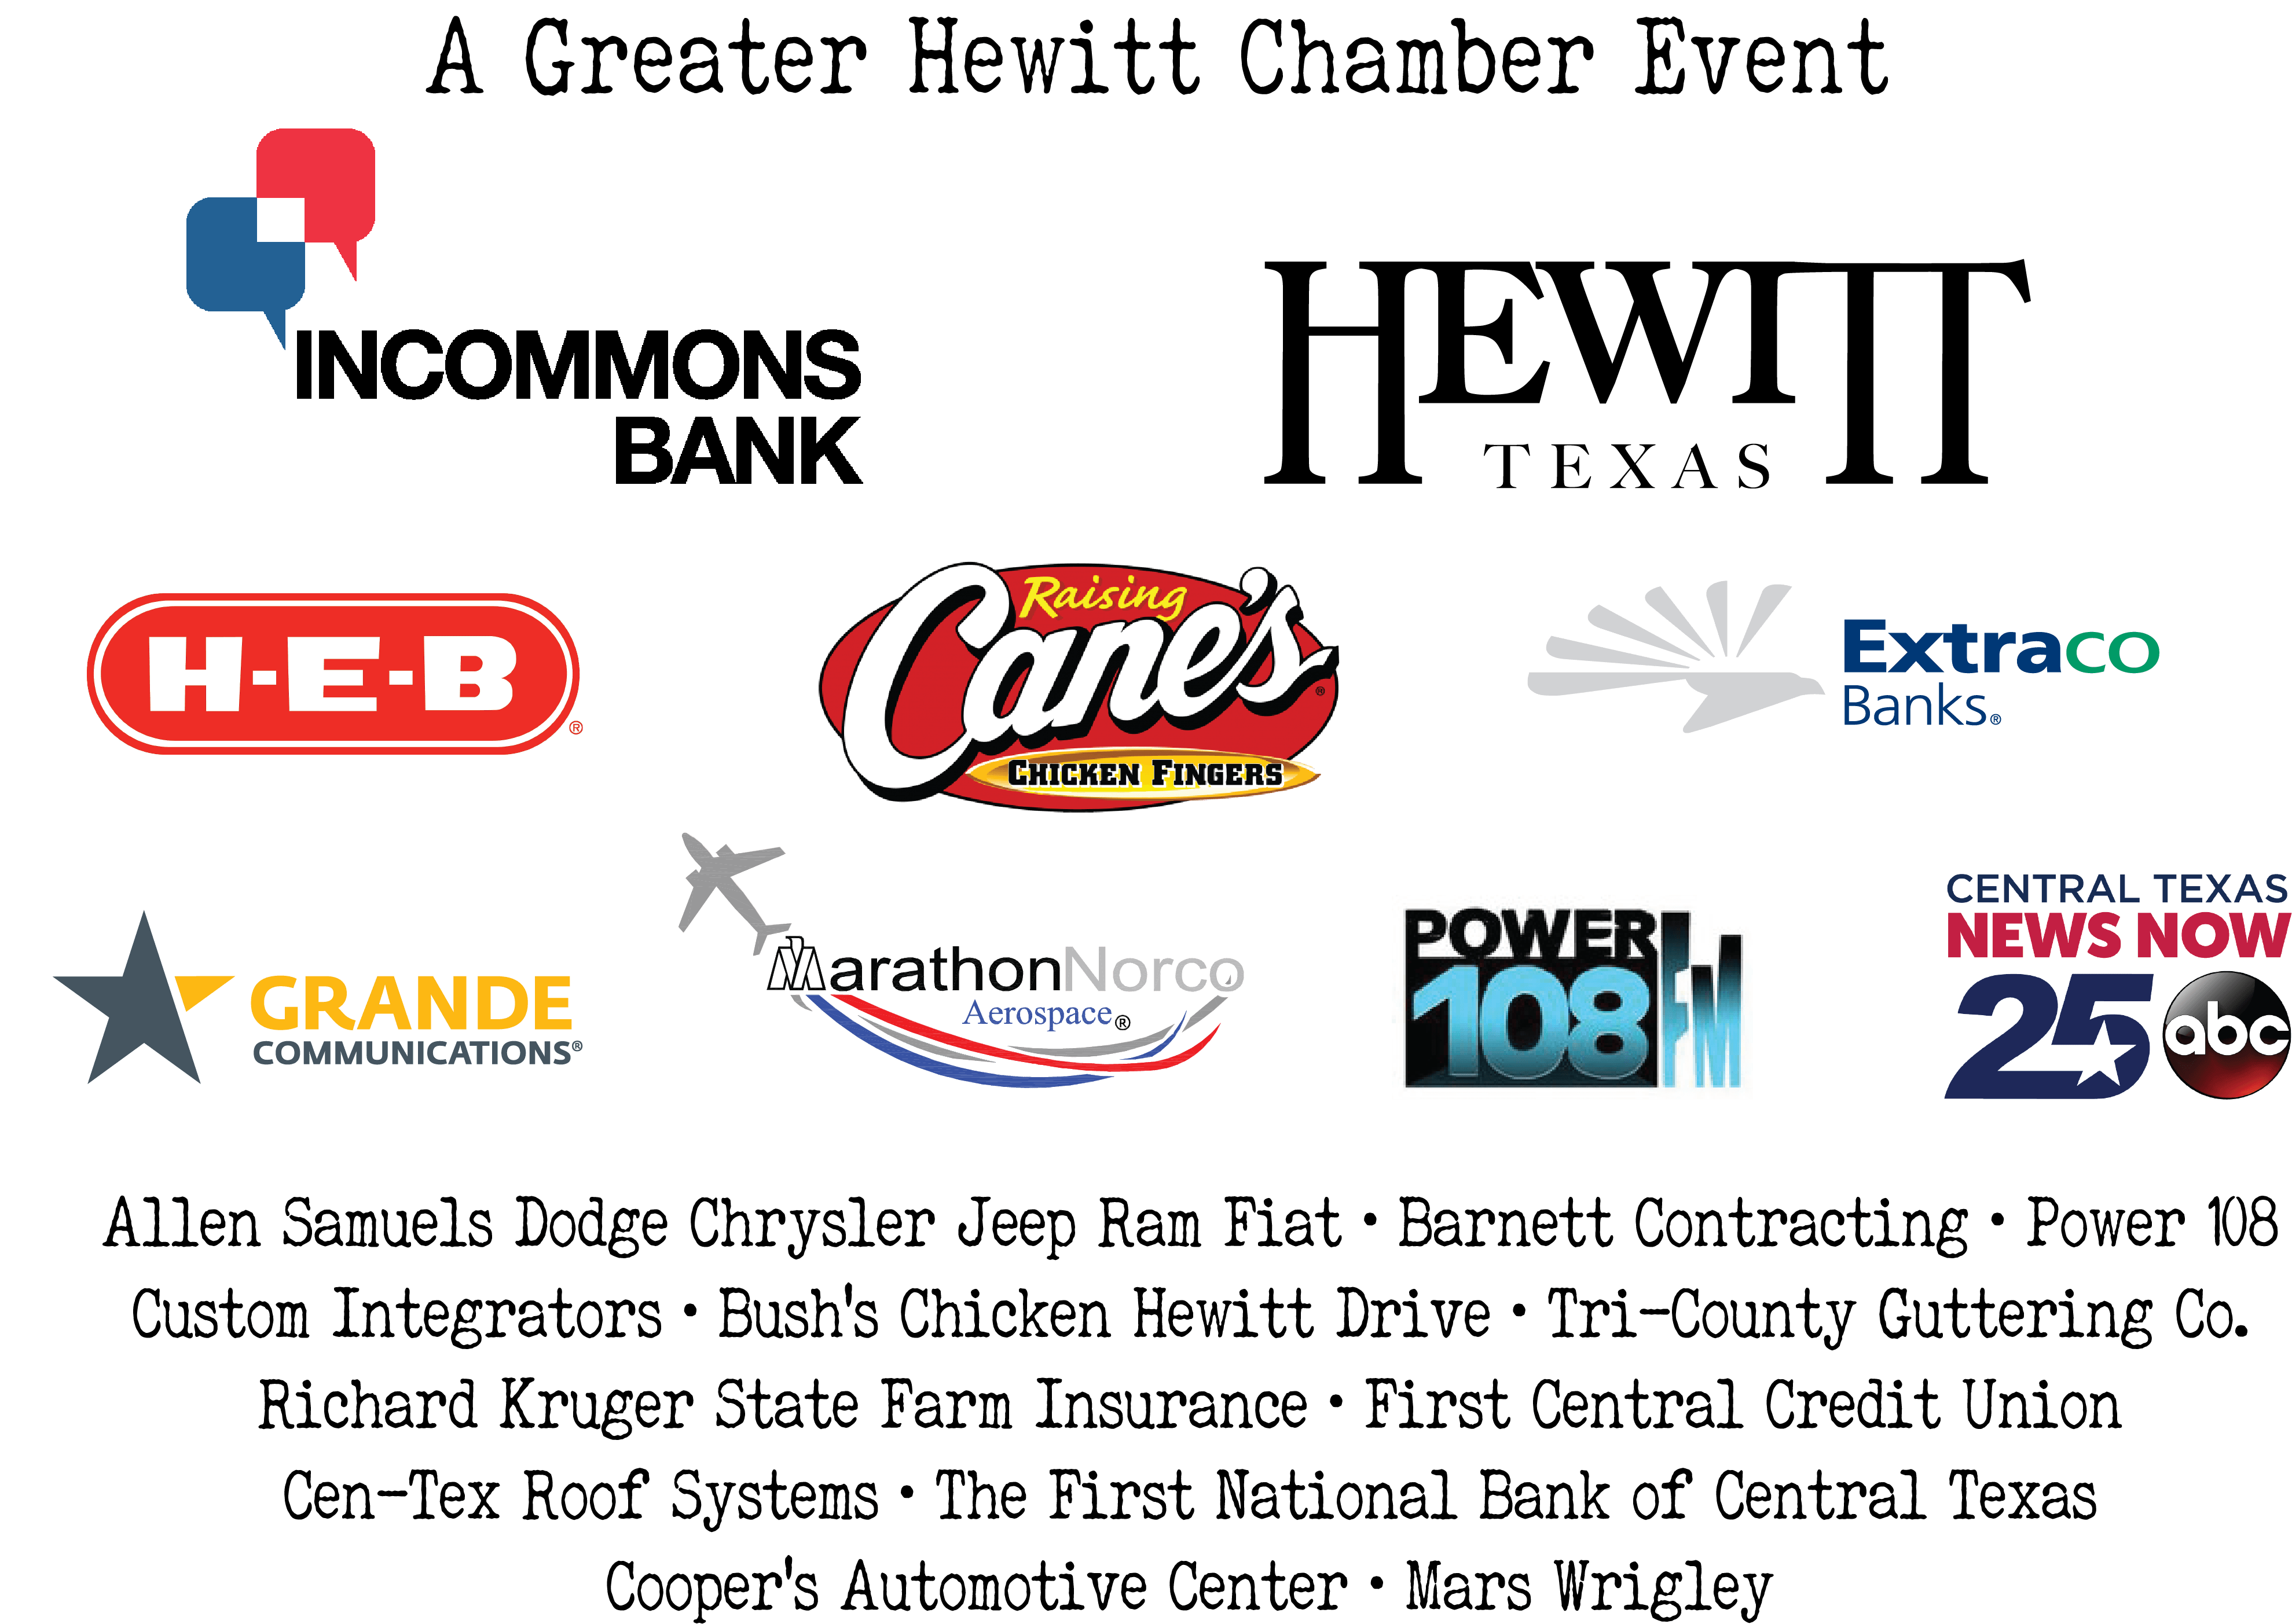 Spooktacular - Greater Hewitt Chamber of Commerce